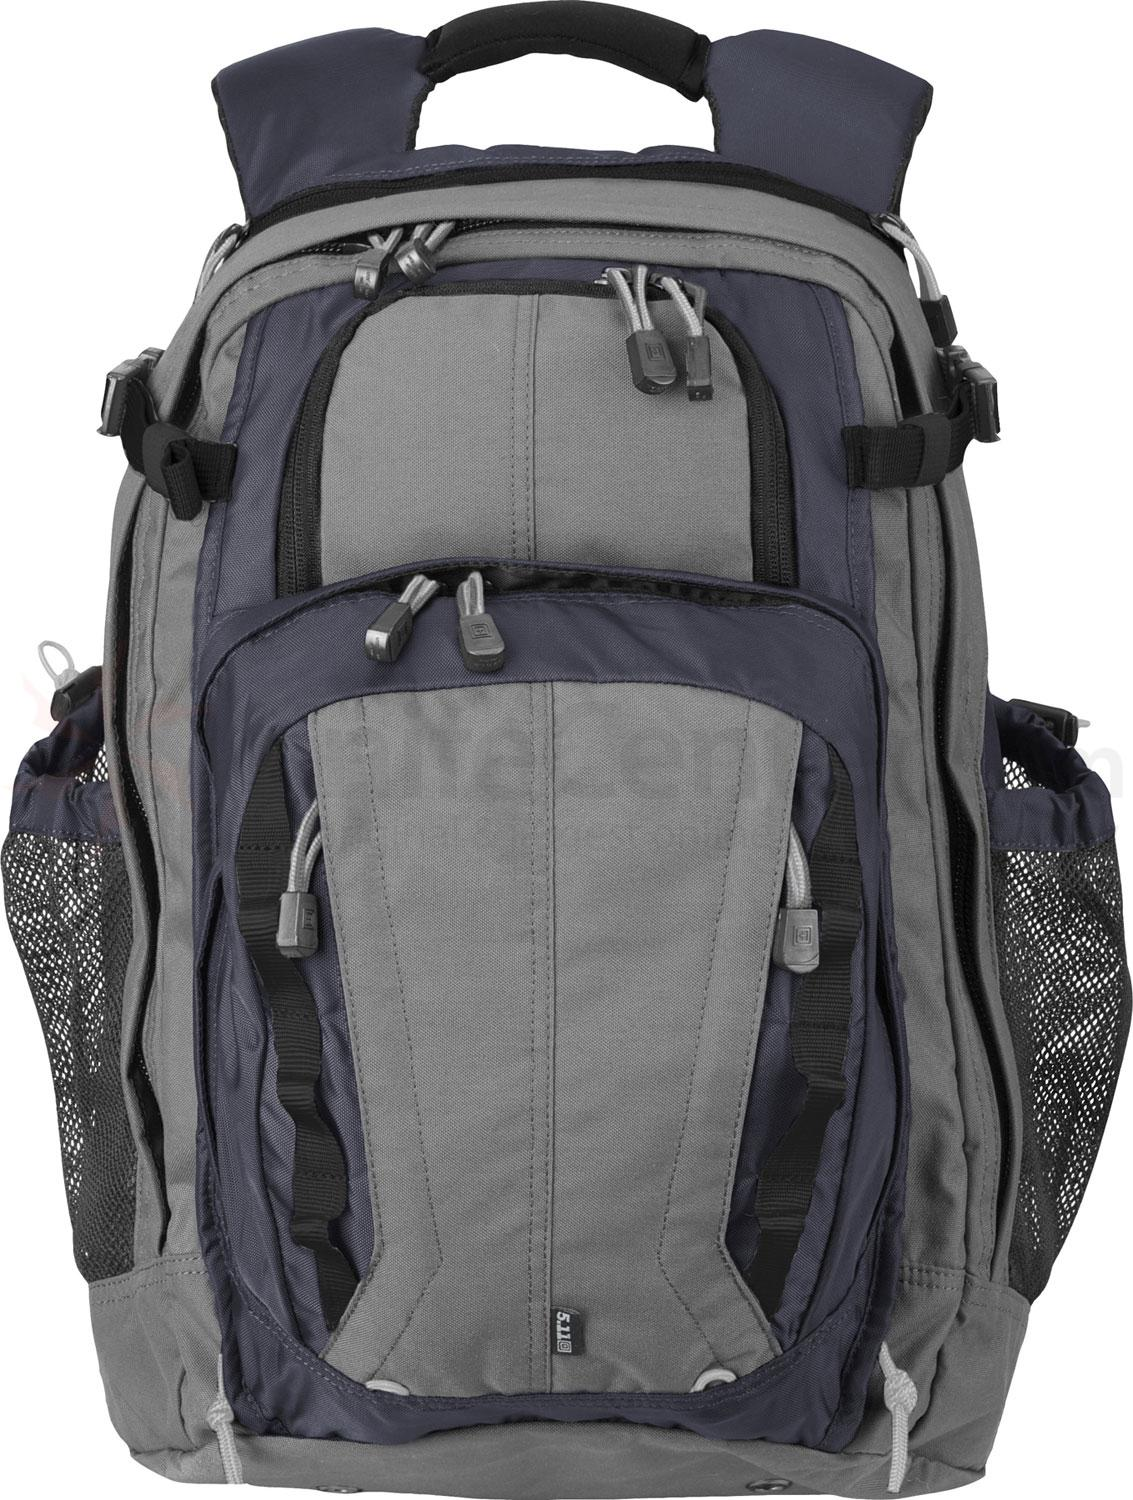 5.11 Tactical Covrt 18 Backpack, Blue Depth (56961-671)